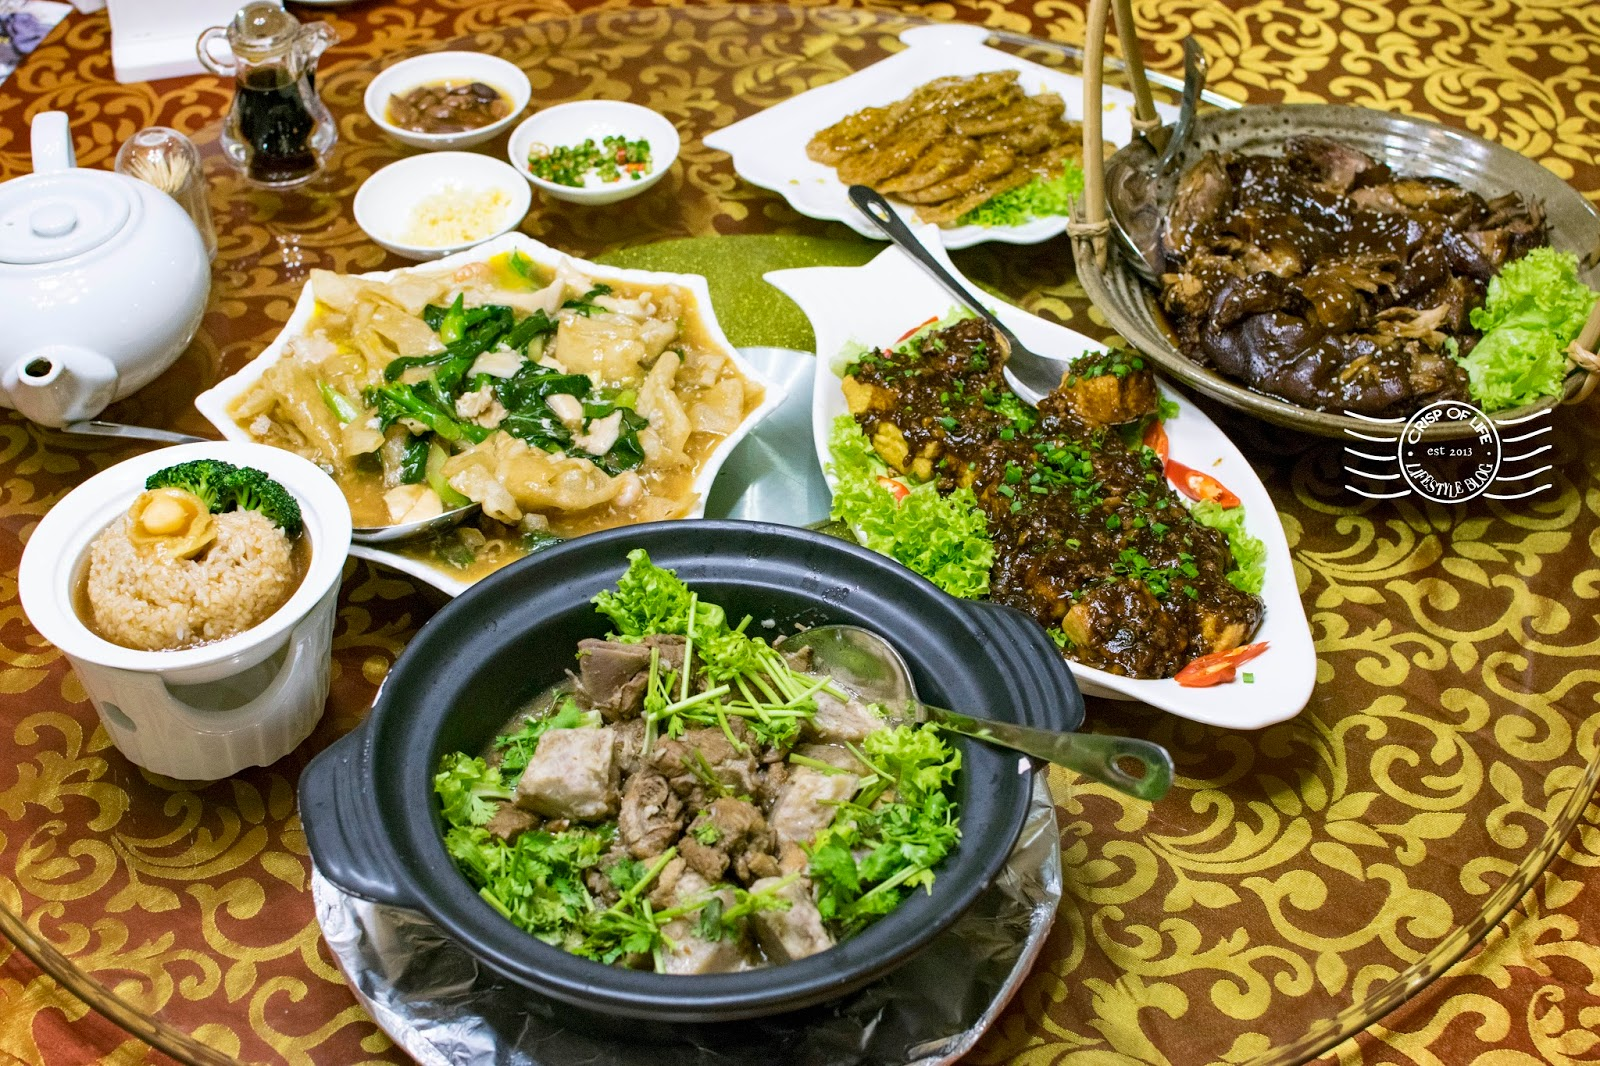 Imperial Chinese Cuisine 御宝轩 @ Lot33, Prangin Mall, Georgetown, Penang